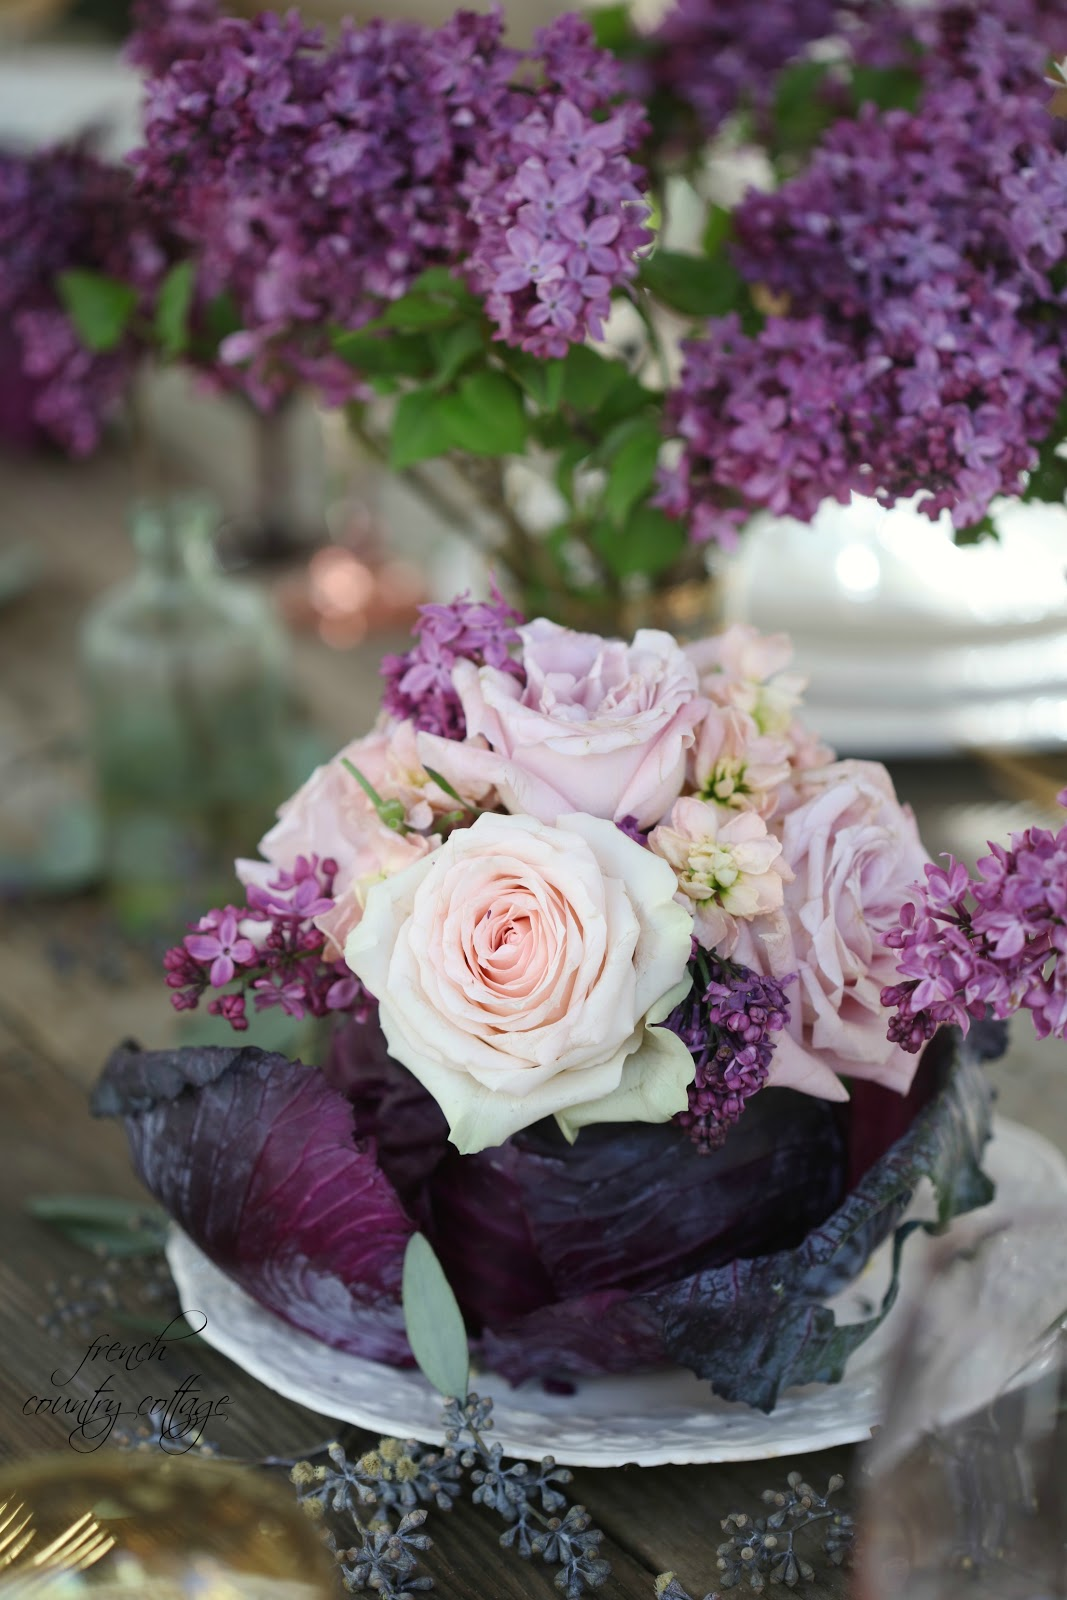 Entertaining lilacs roses purple cabbage table setting